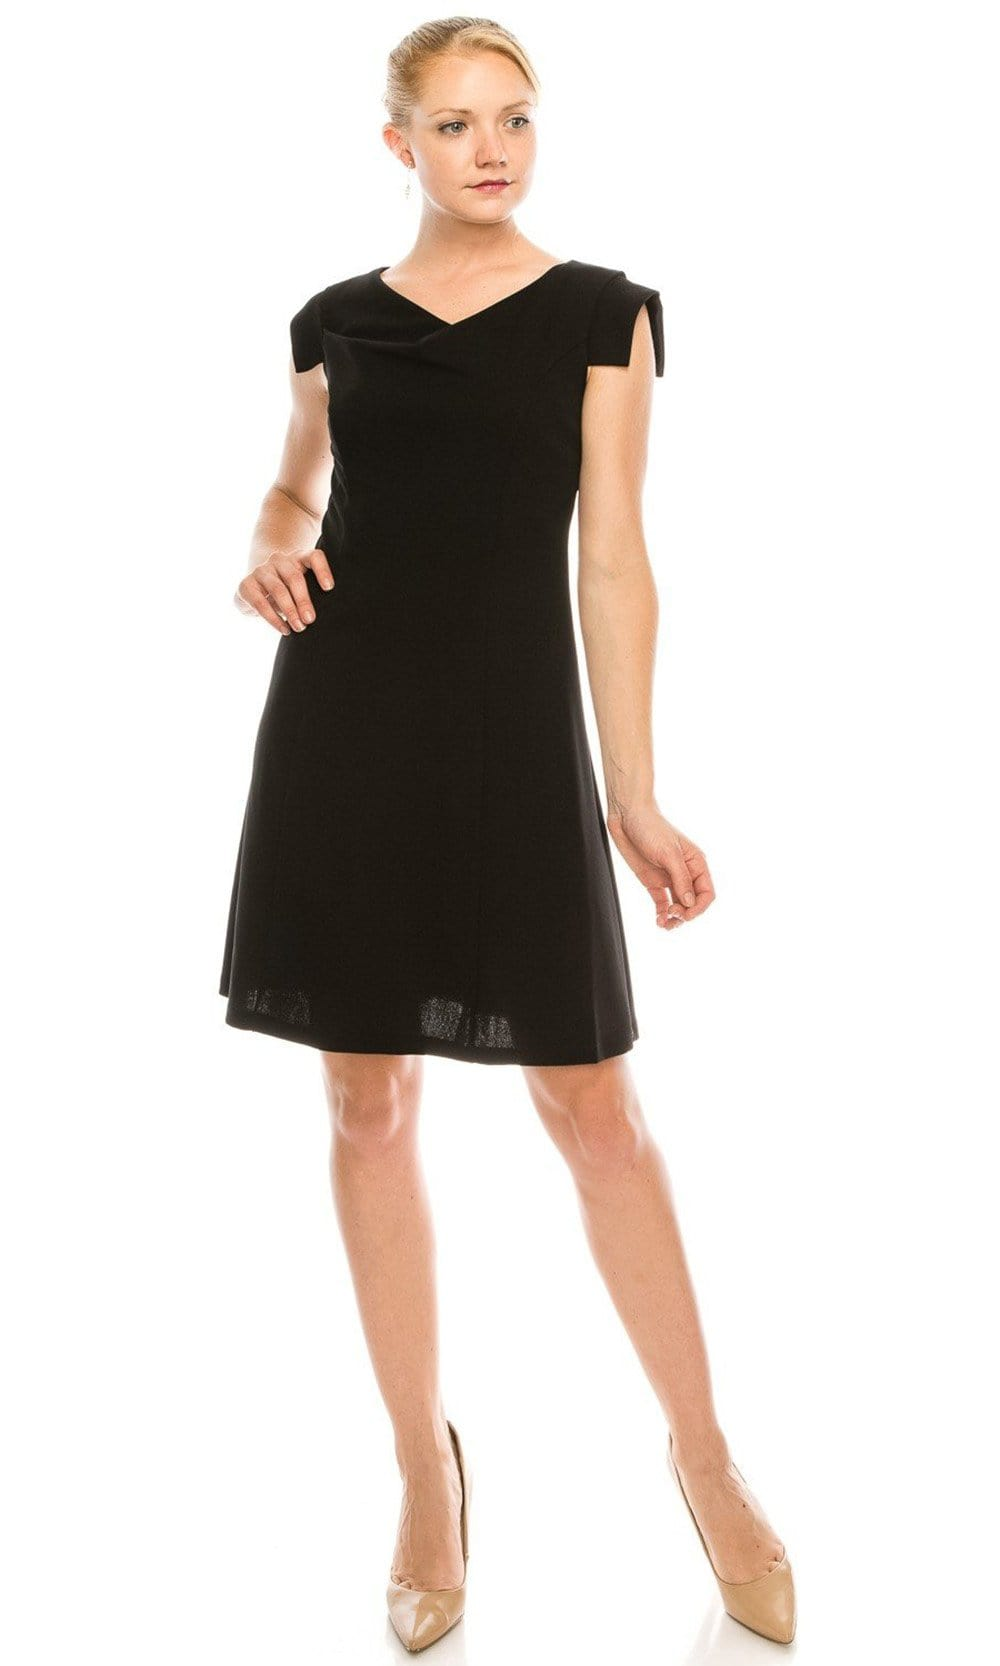 Bebe - 701588 Cowl Neck Cap Sleeve Dress from Bebe